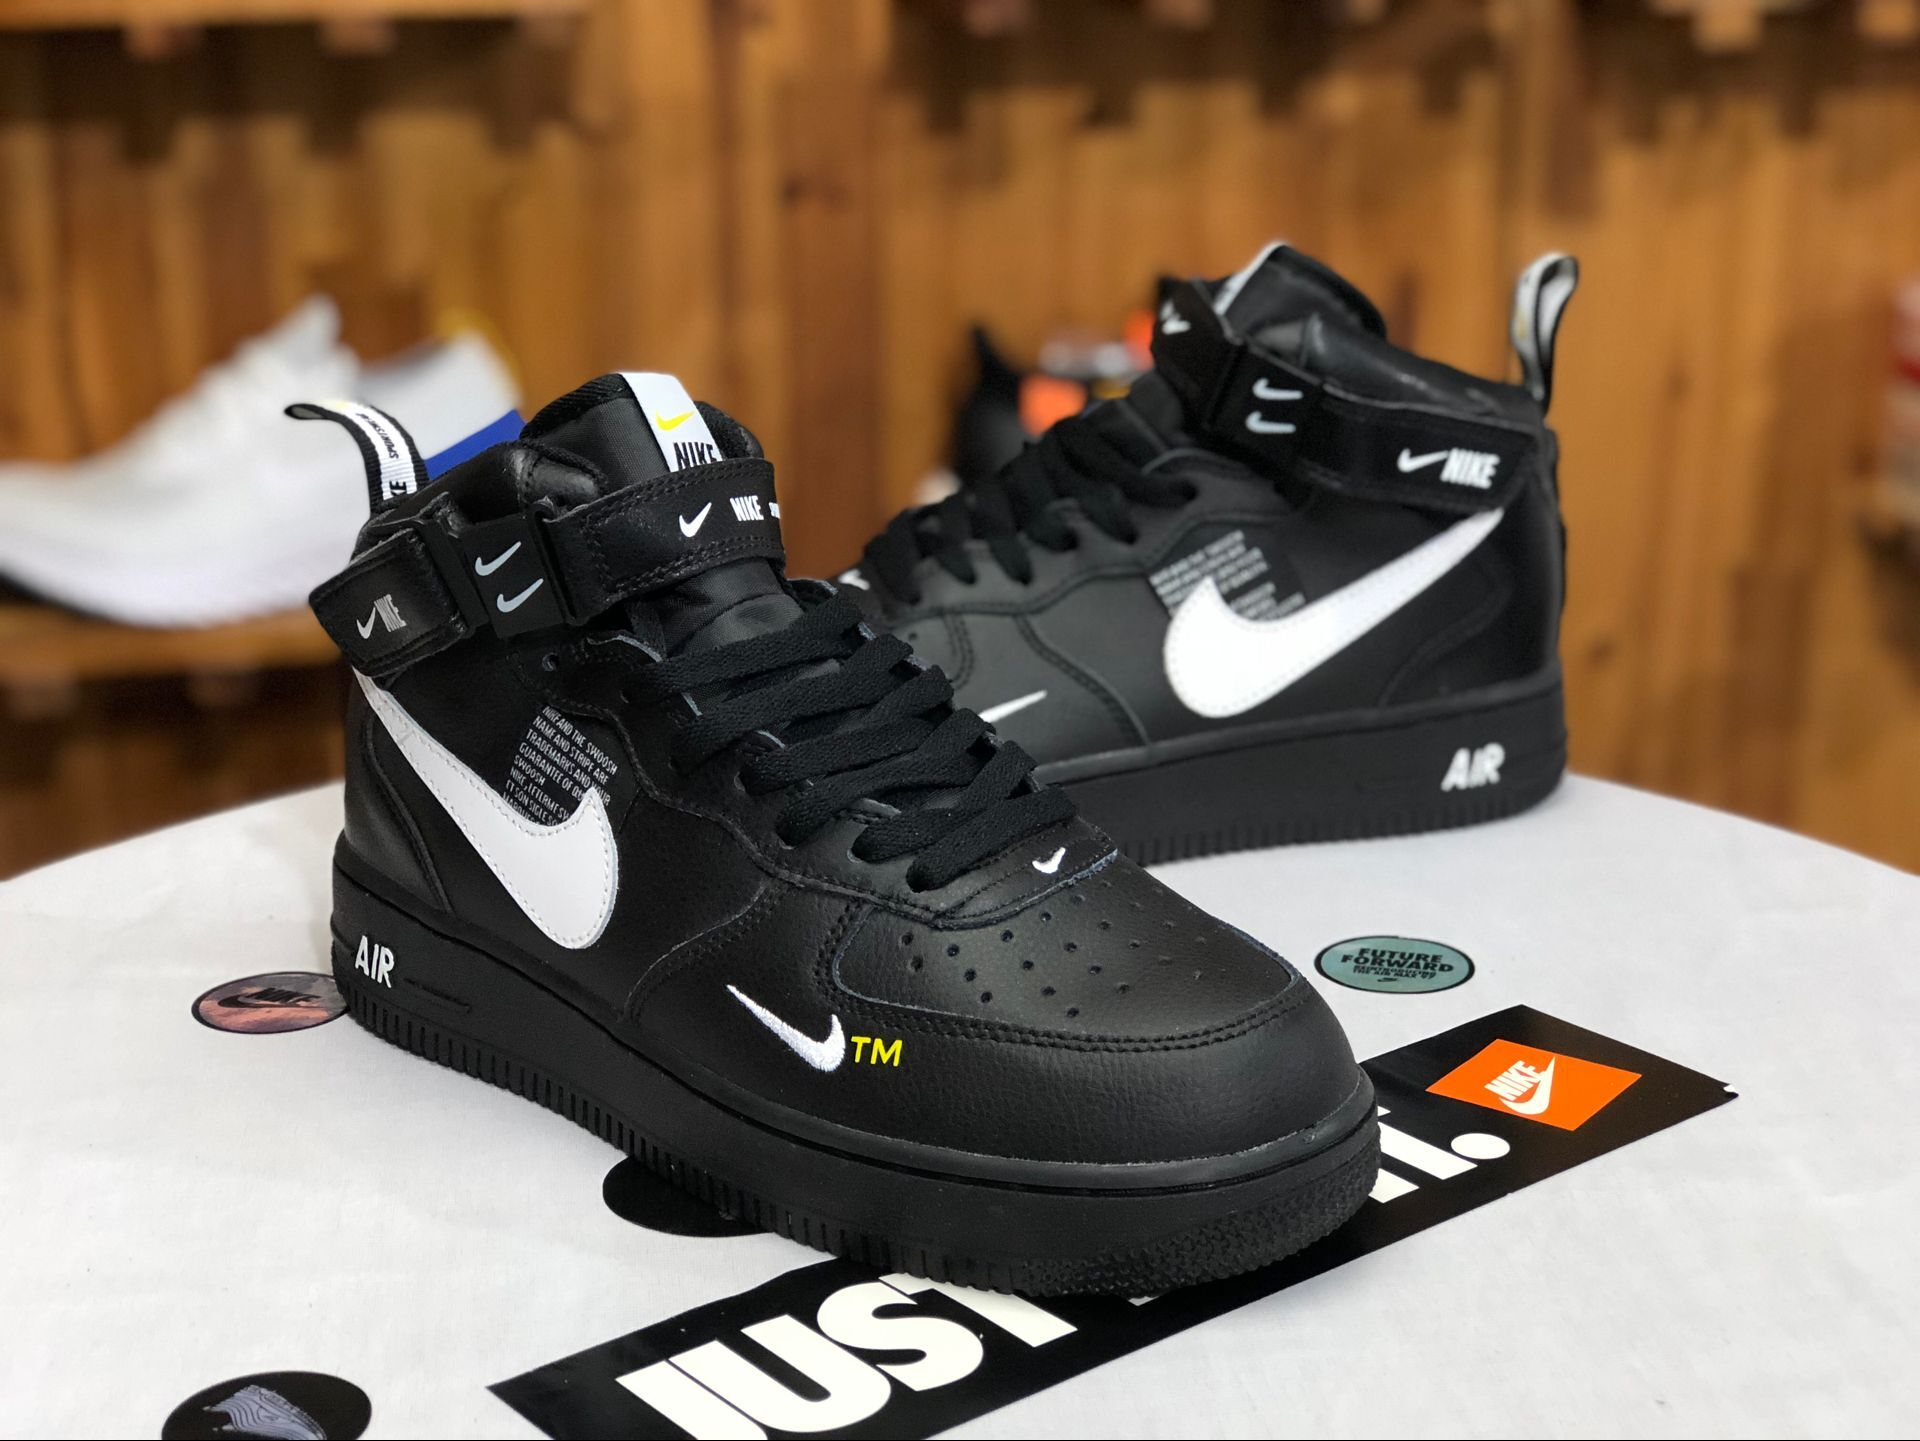 huge discount 36bfb fae9b nike lebron lcon qs x john elliott 807480 004 yupoo  nike air force 1 af1  deconstruction lite ow black and white air force high no.